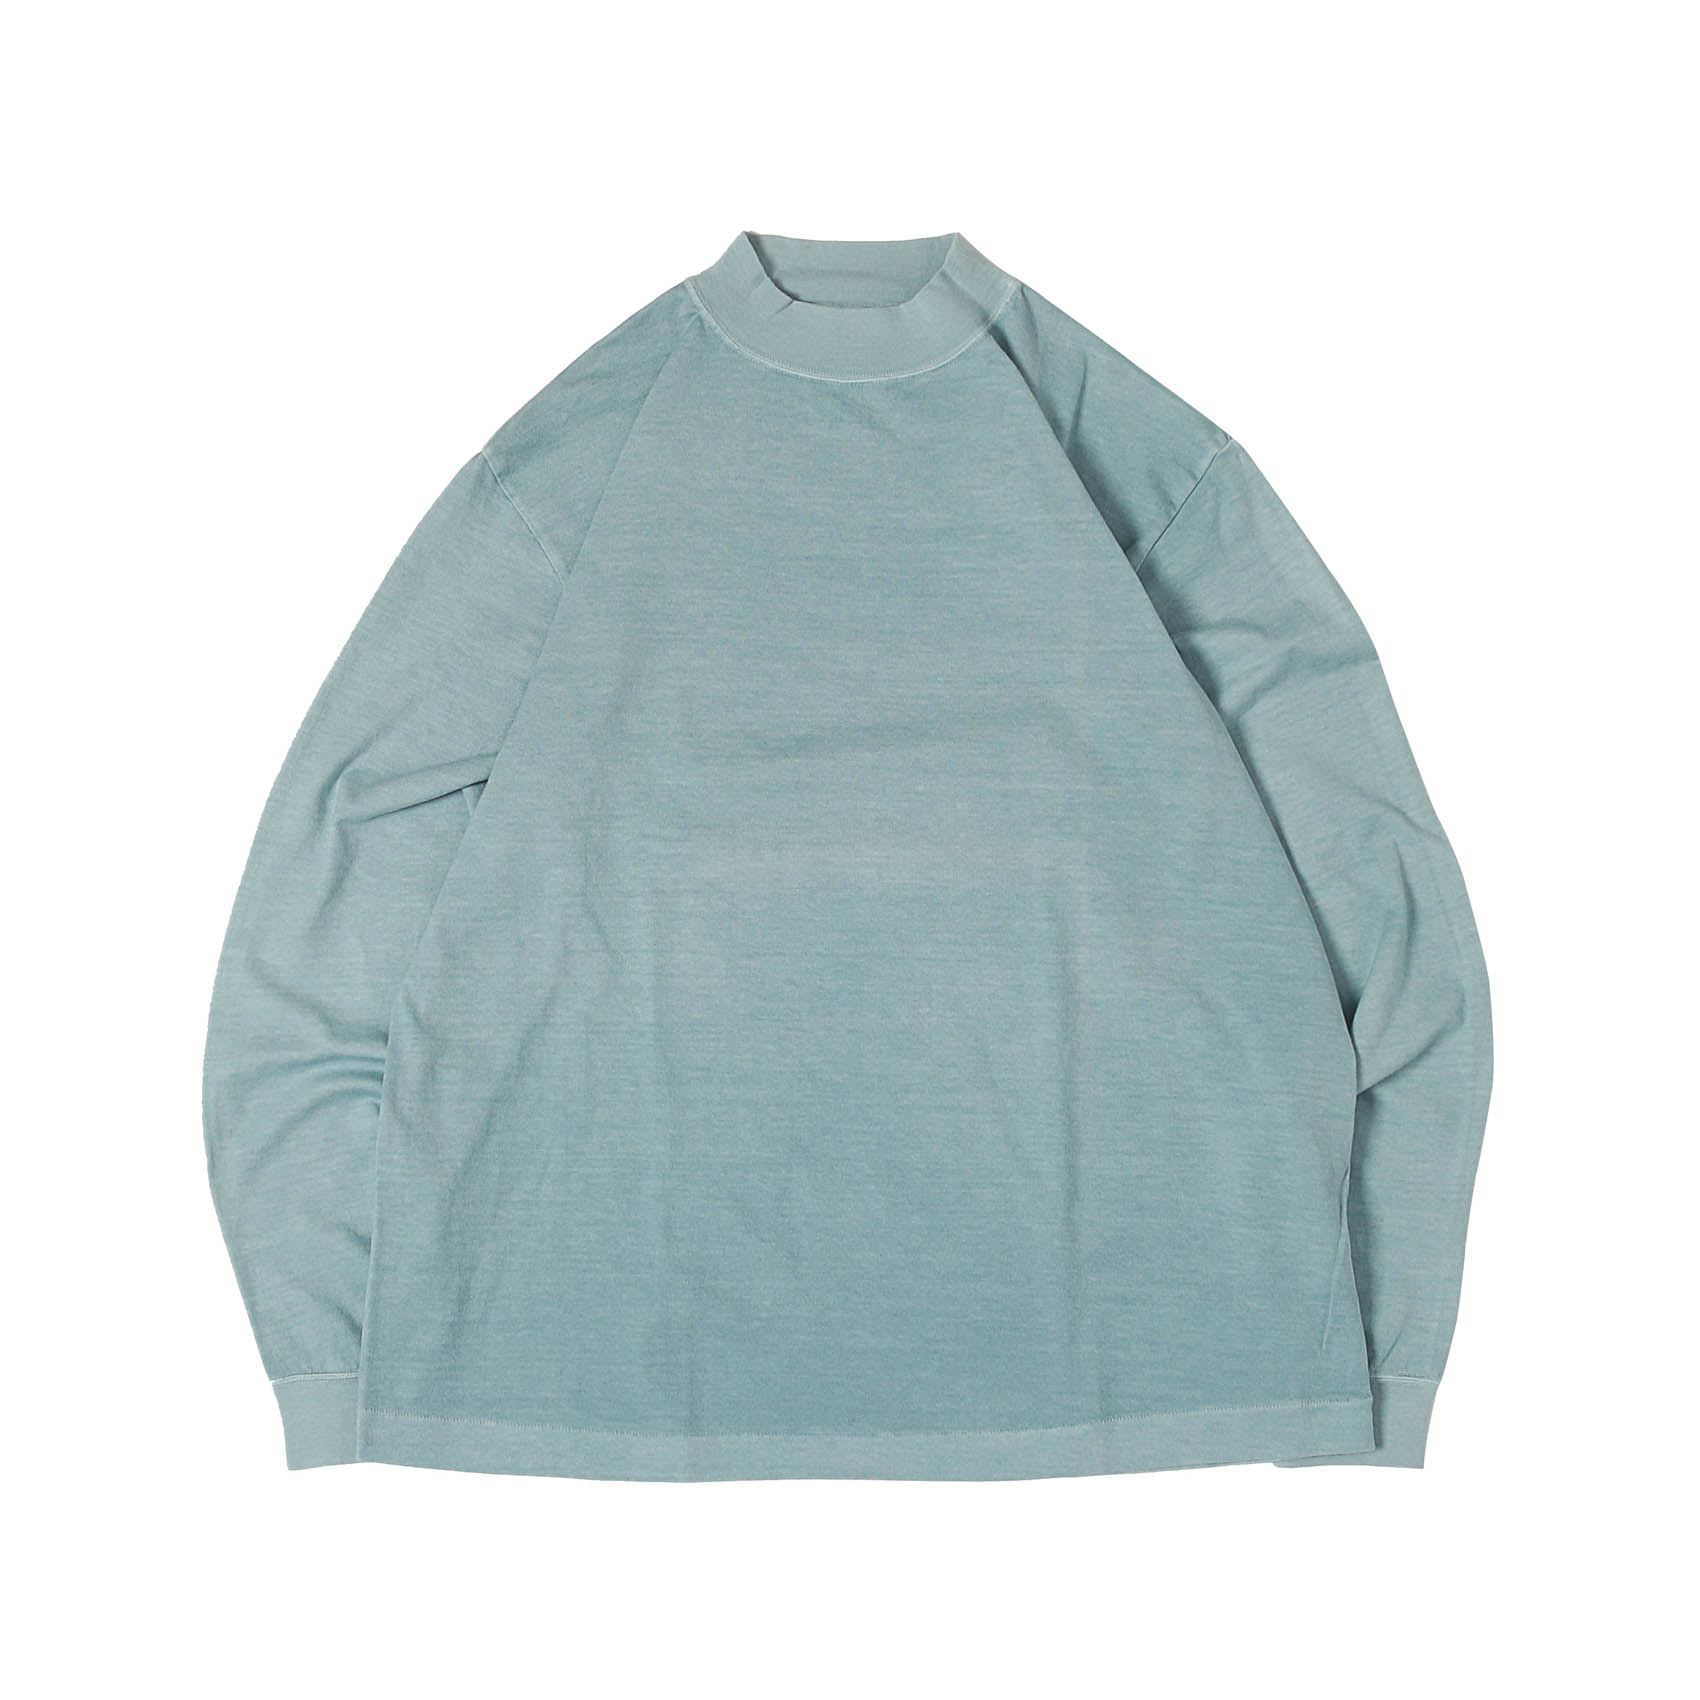 L/S MOCK NECK TEE - BLUE